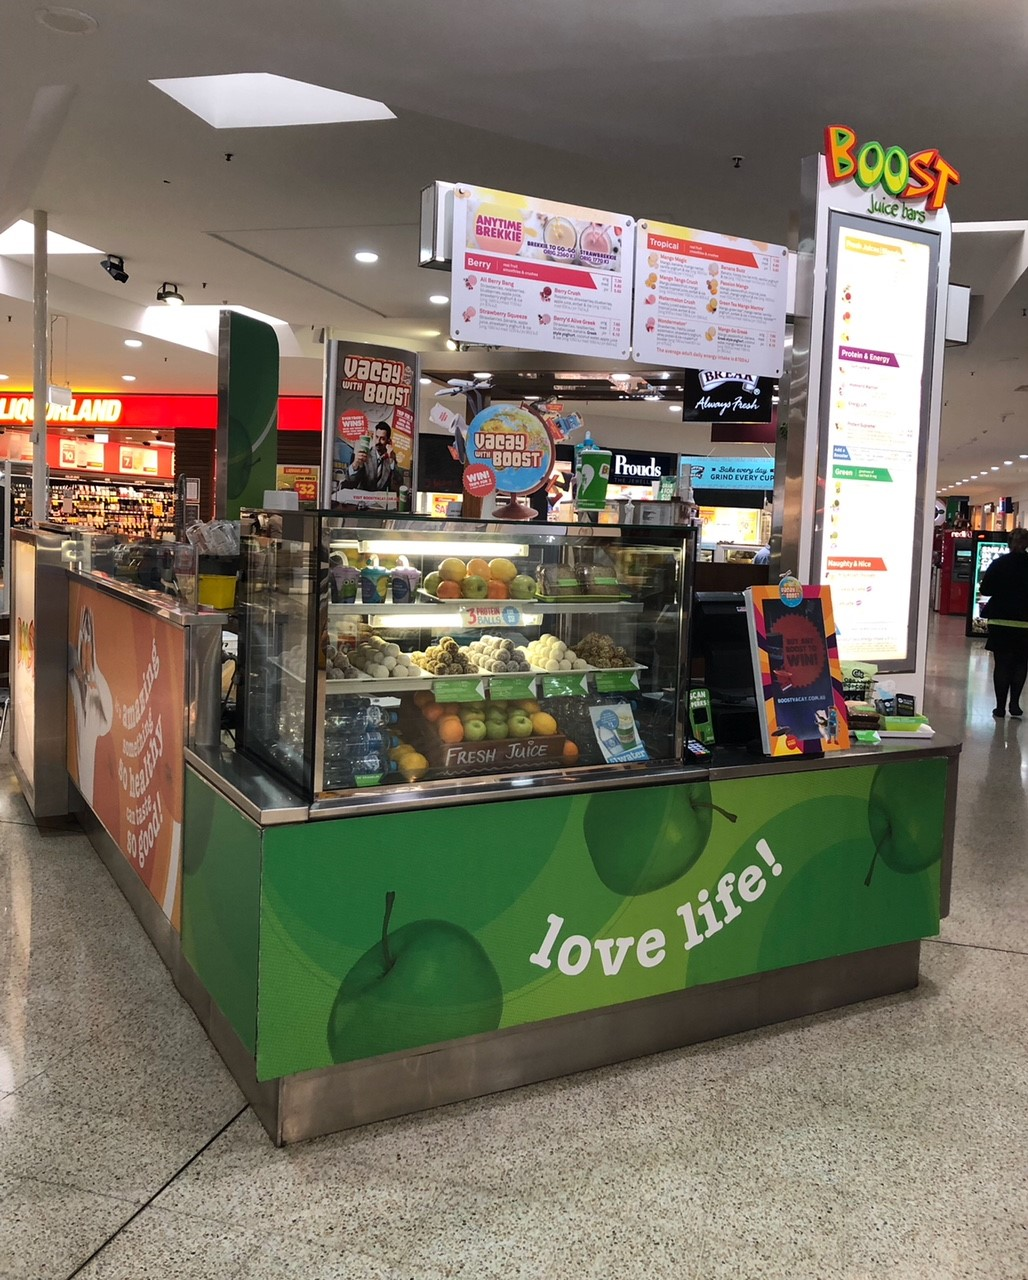 Dubbo Square, NSW – Existing Store